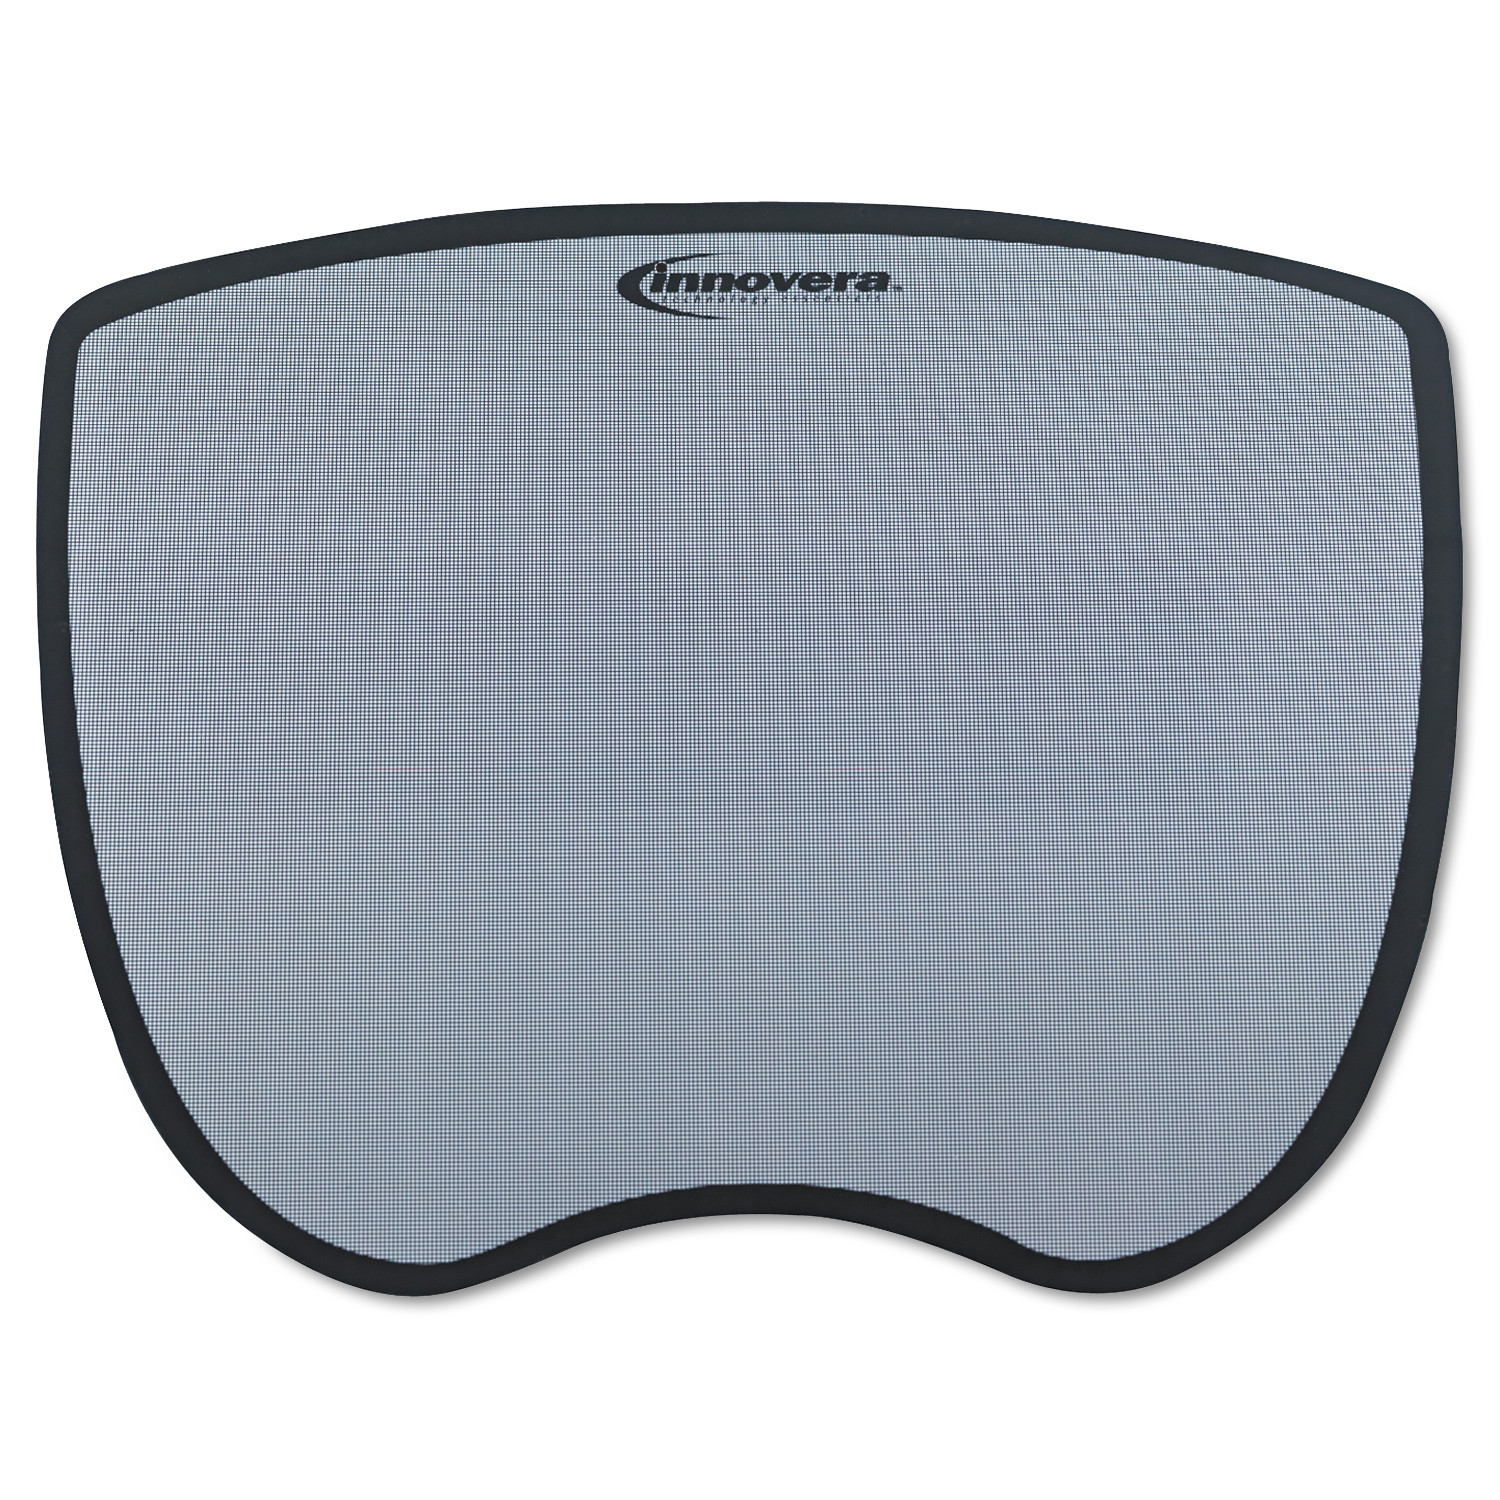 Innovera Ultra Slim Mouse Pad, Nonskid Rubber Base, 8-3/4 x 7, Gray -IVR50469